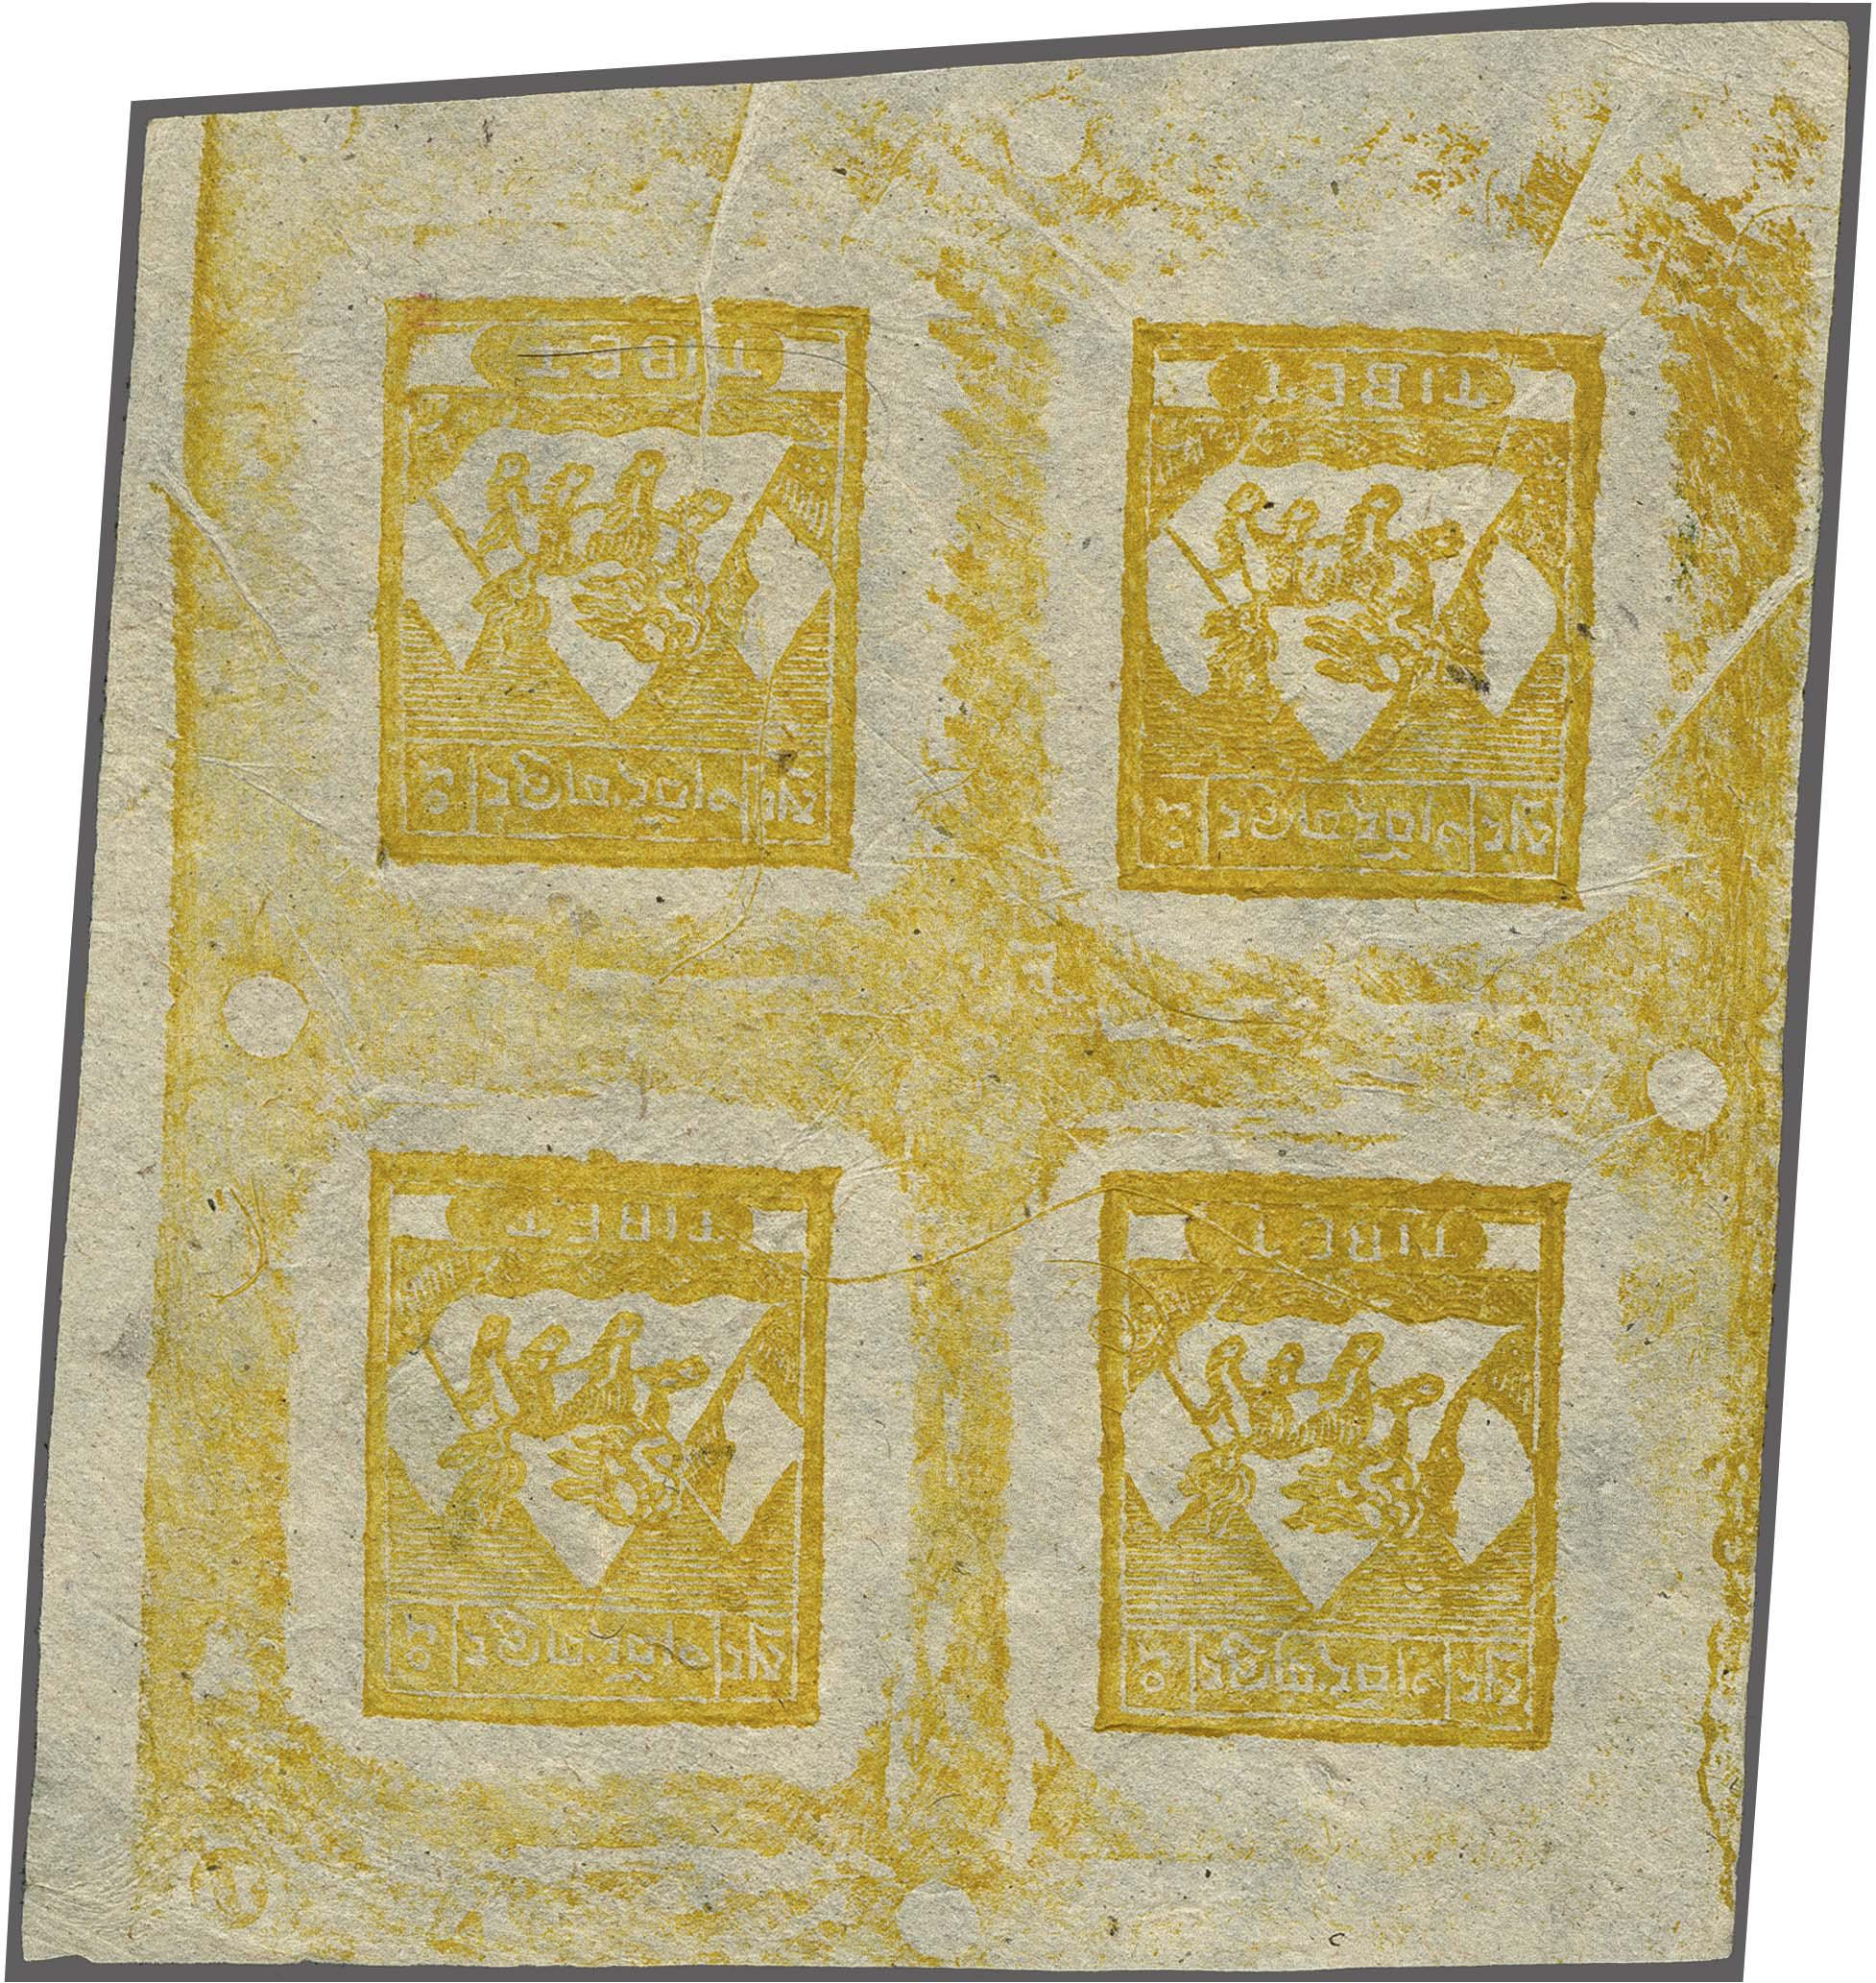 Lot 80 - Outside Europa tibet -  Corinphila Veilingen Auction 250-253 - Day 1 - Foreign countries